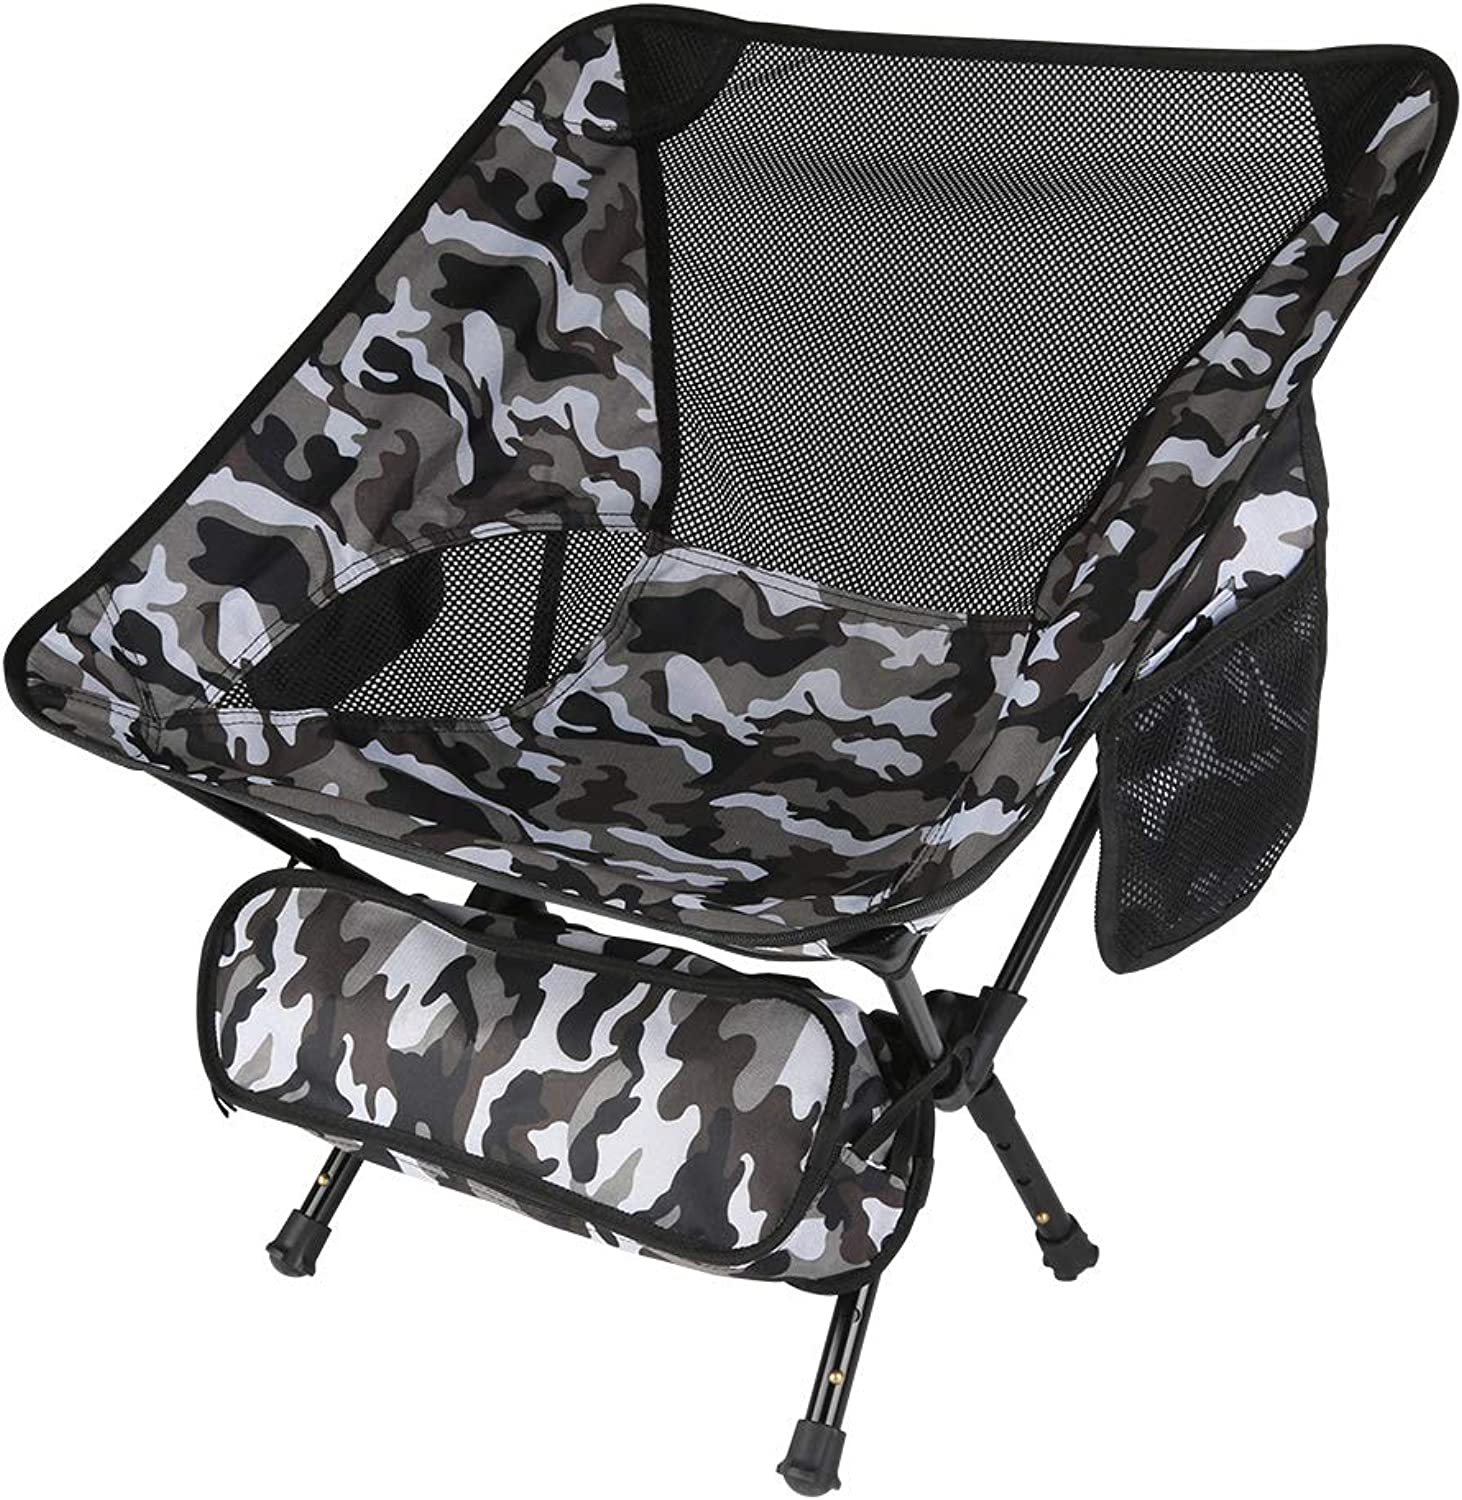 Portable Camping Chairs with Adjustable Height  Ultra Light Compact Folding Backpacking Chair with Carrying Bag, Heavy Duty 330 lb Capacity for Outdoor, BBQ, Hiking, Picnic, Fishing, Festival